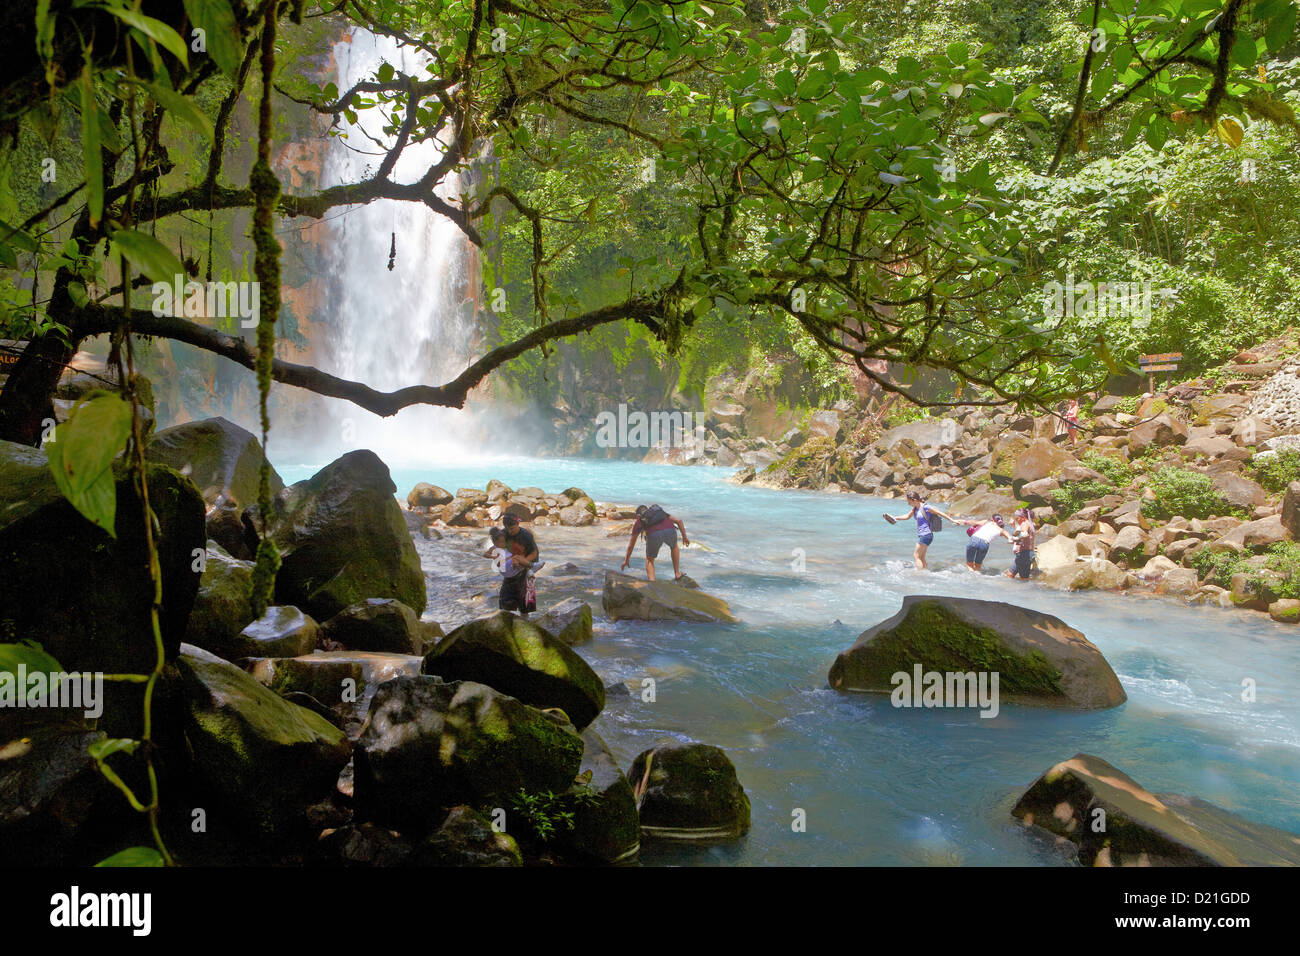 People in front of waterfall Rio Celeste at Tenorio National Park, Costa Rica, Central America, America - Stock Image